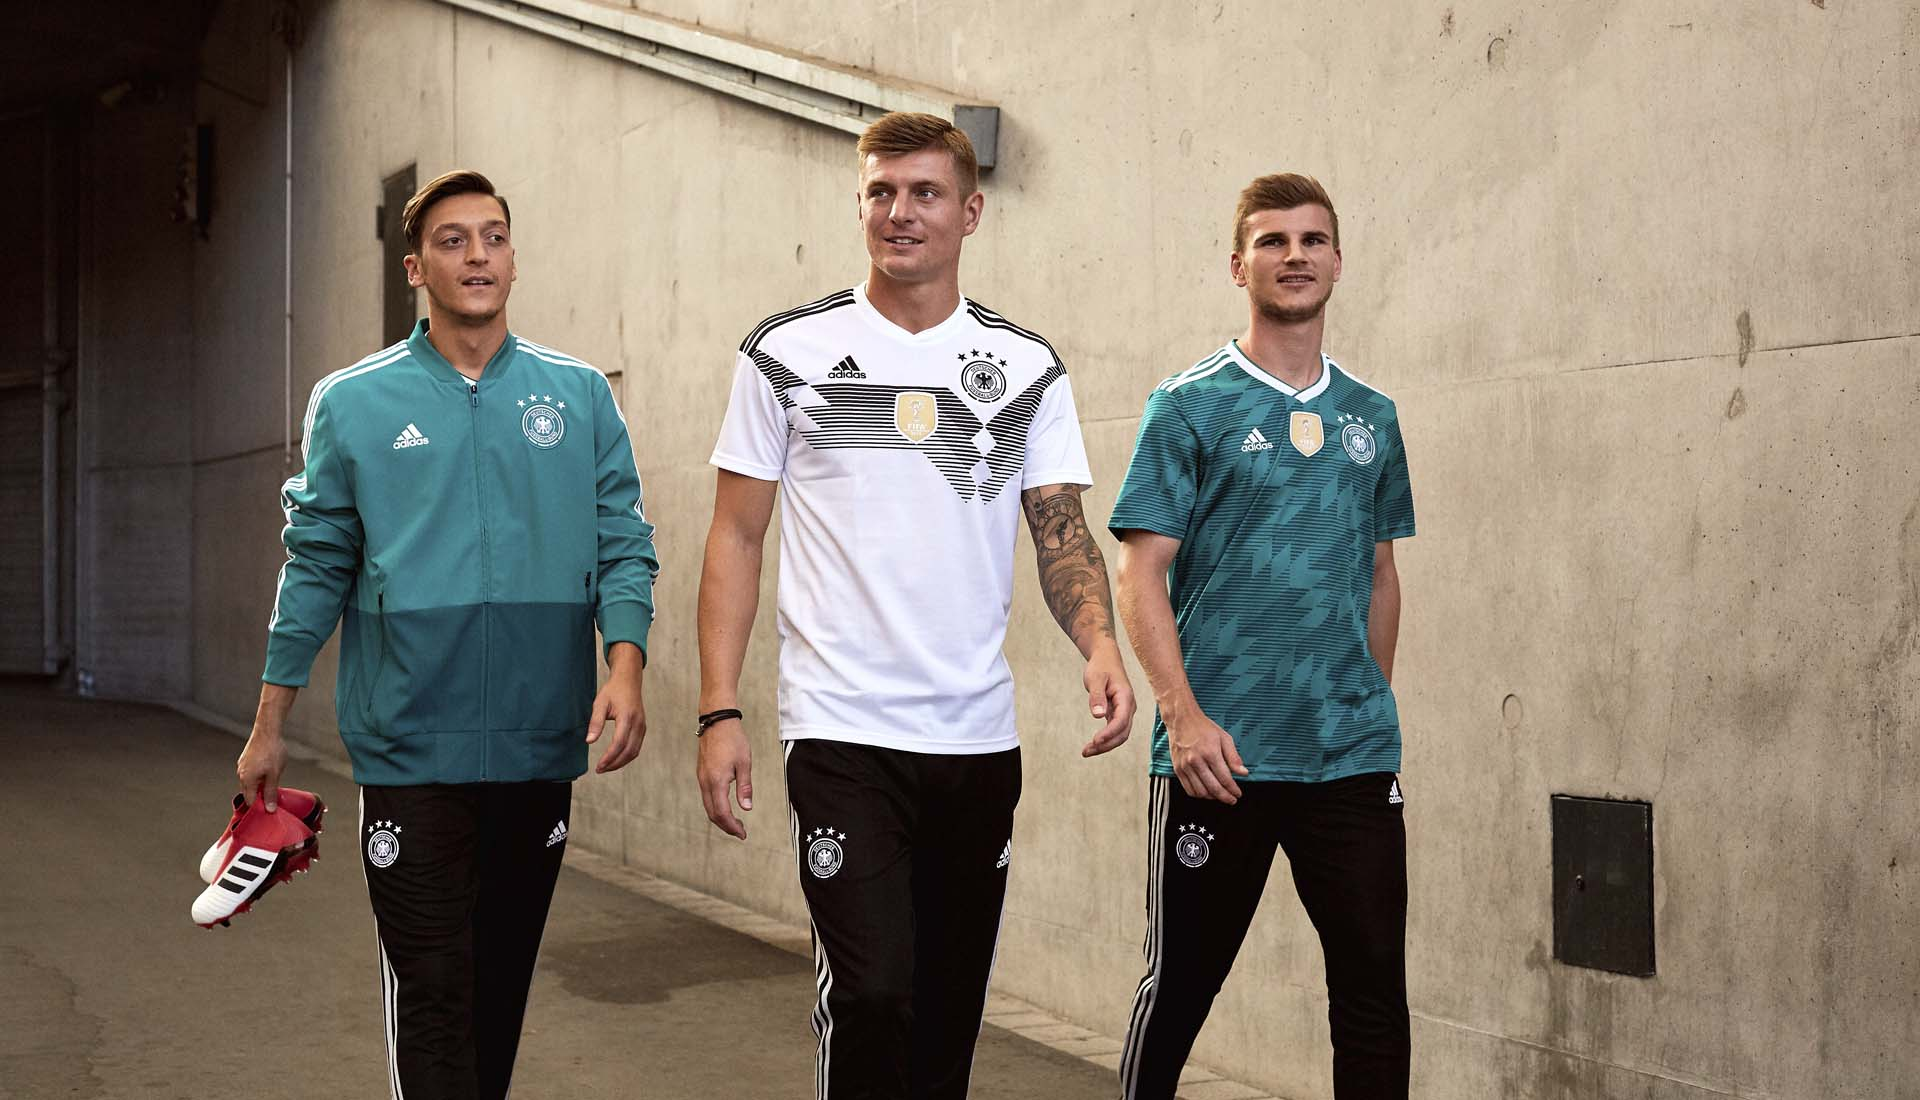 d1c5edbb255 adidas Launch The Germany 2018 World Cup Away Shirt - SoccerBible